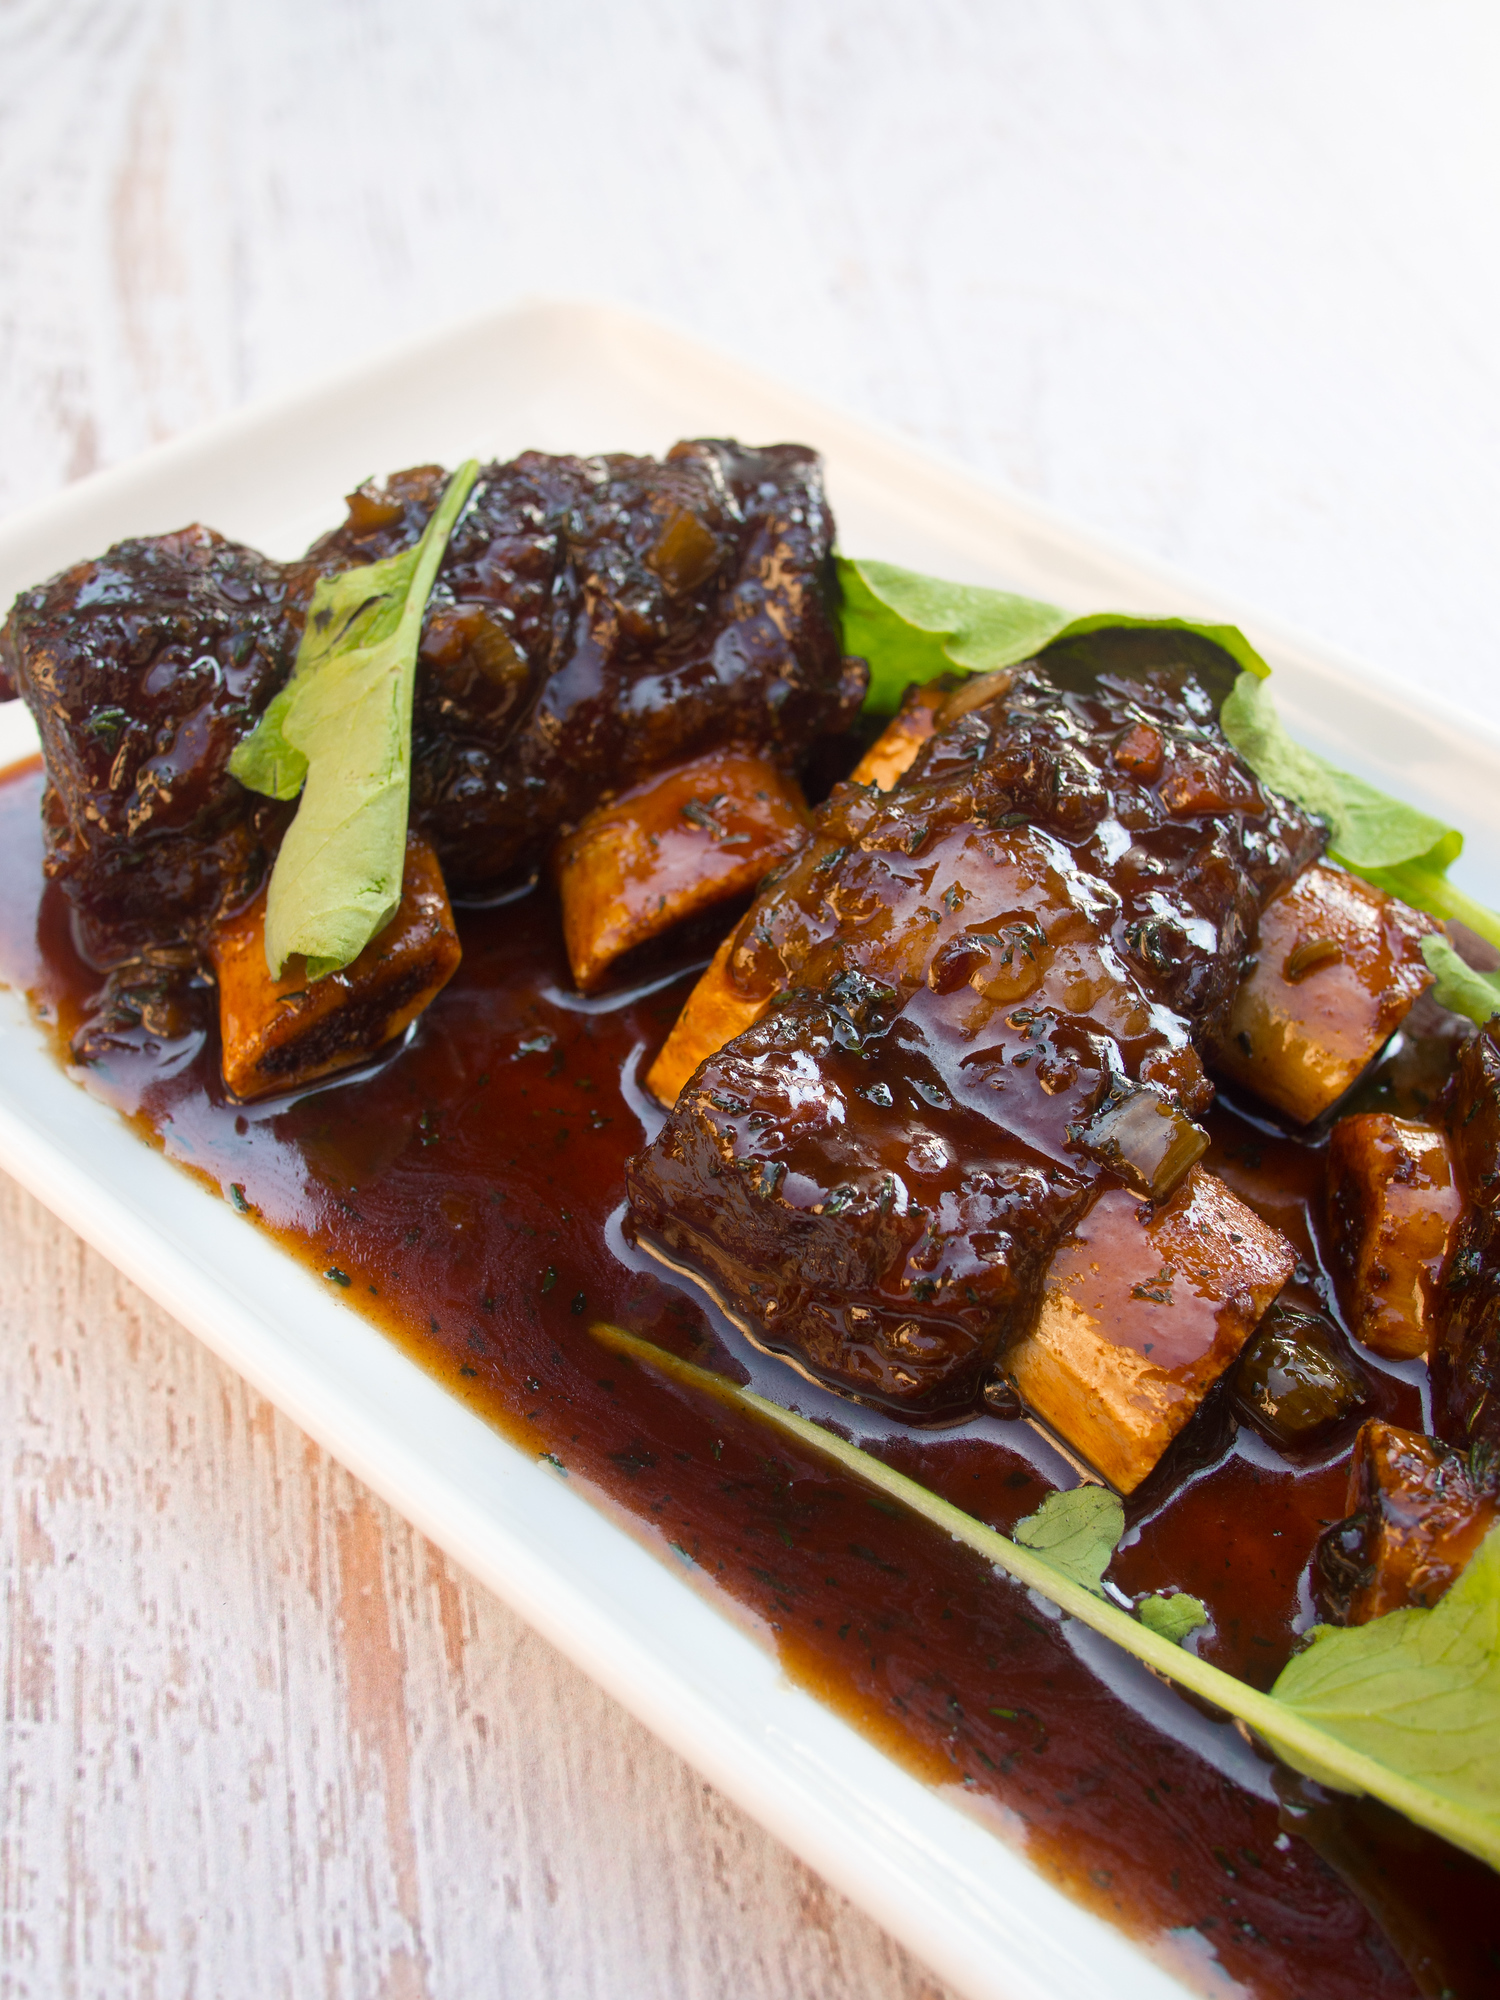 A chef shares his red wine braised short ribs recipe that he makes at home on his day off.